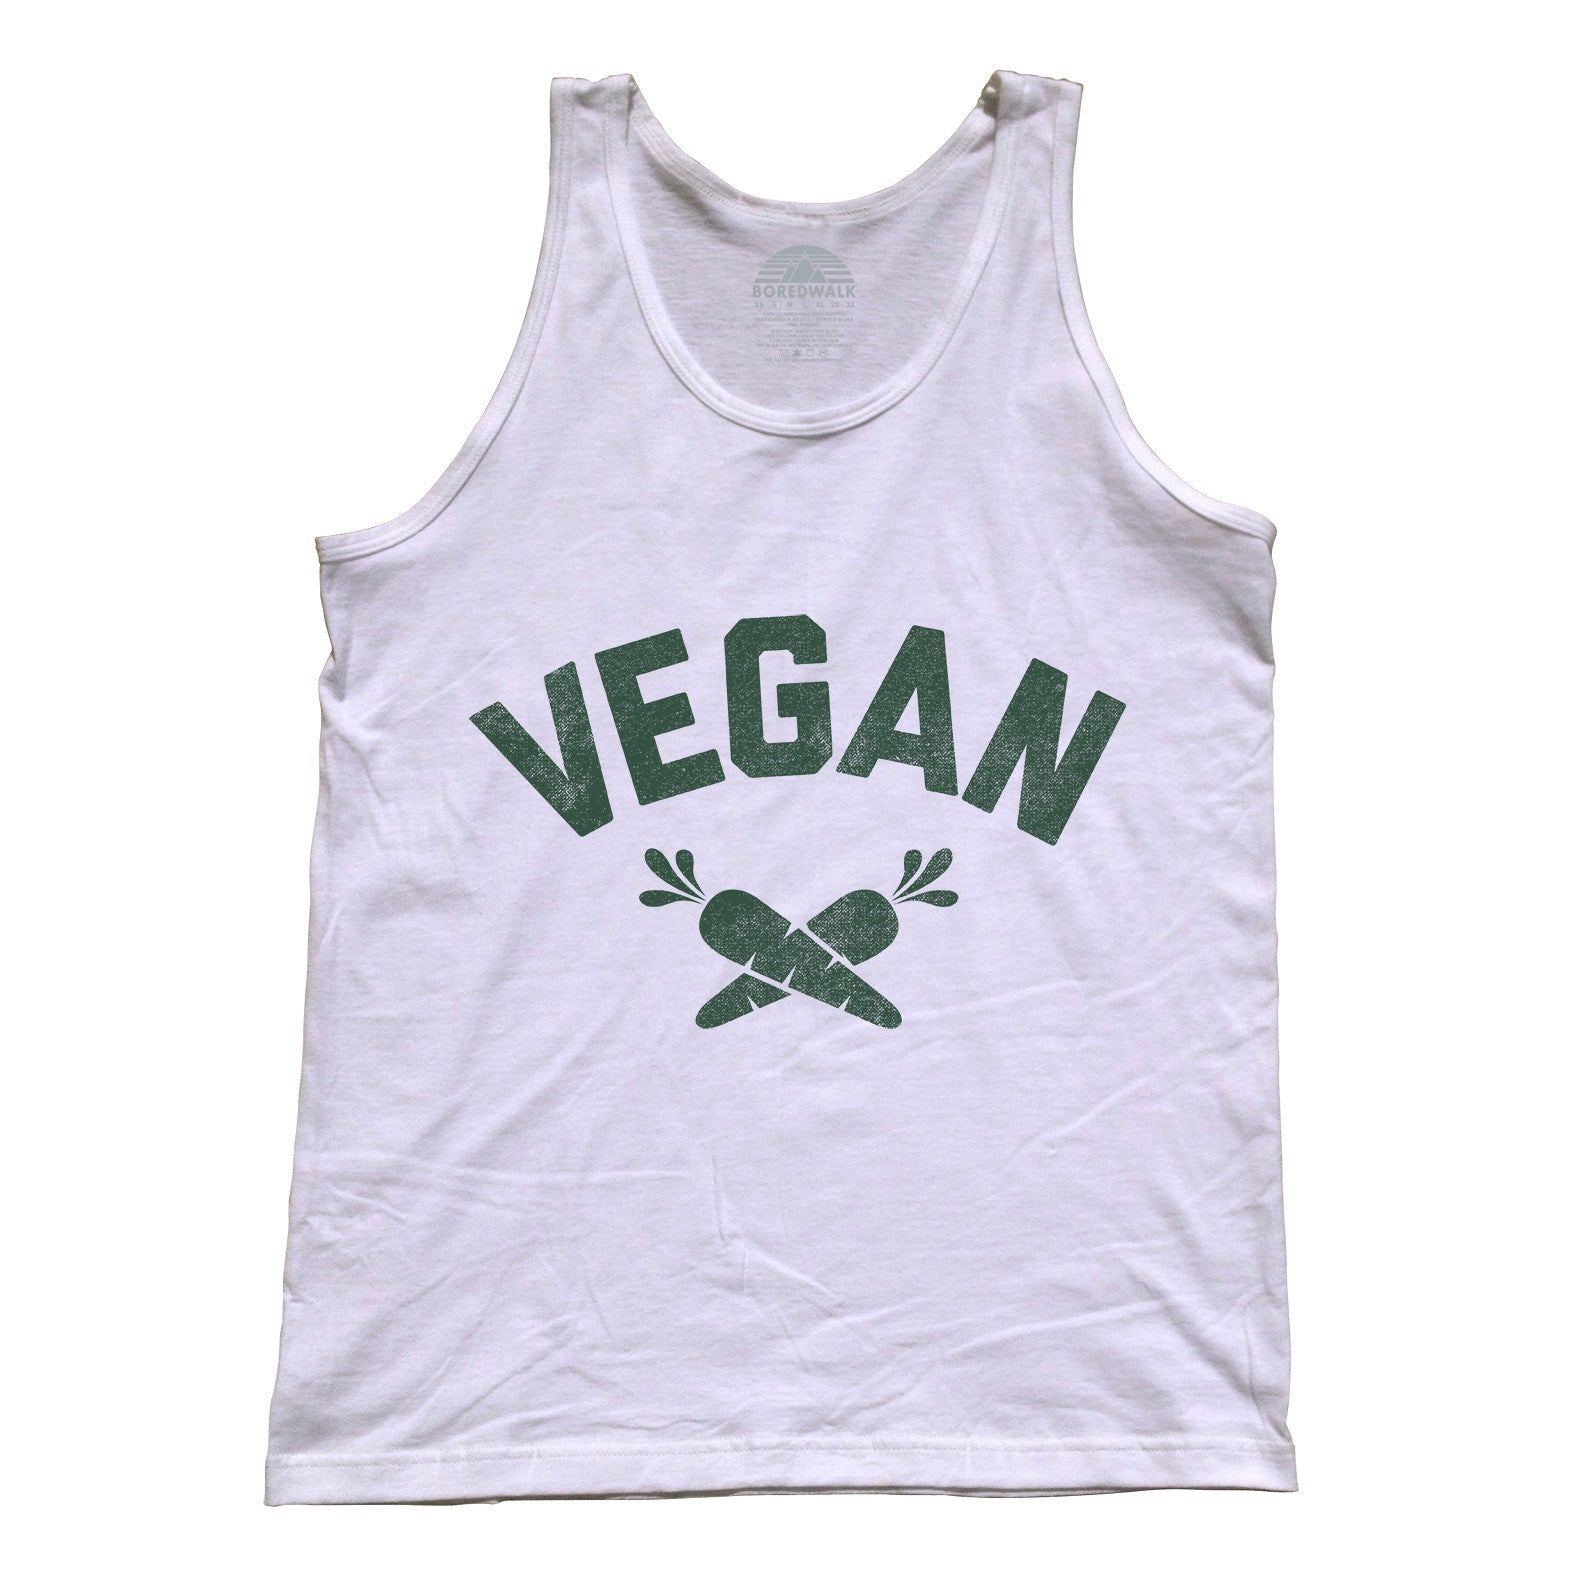 Unisex Team Vegan Tank Top